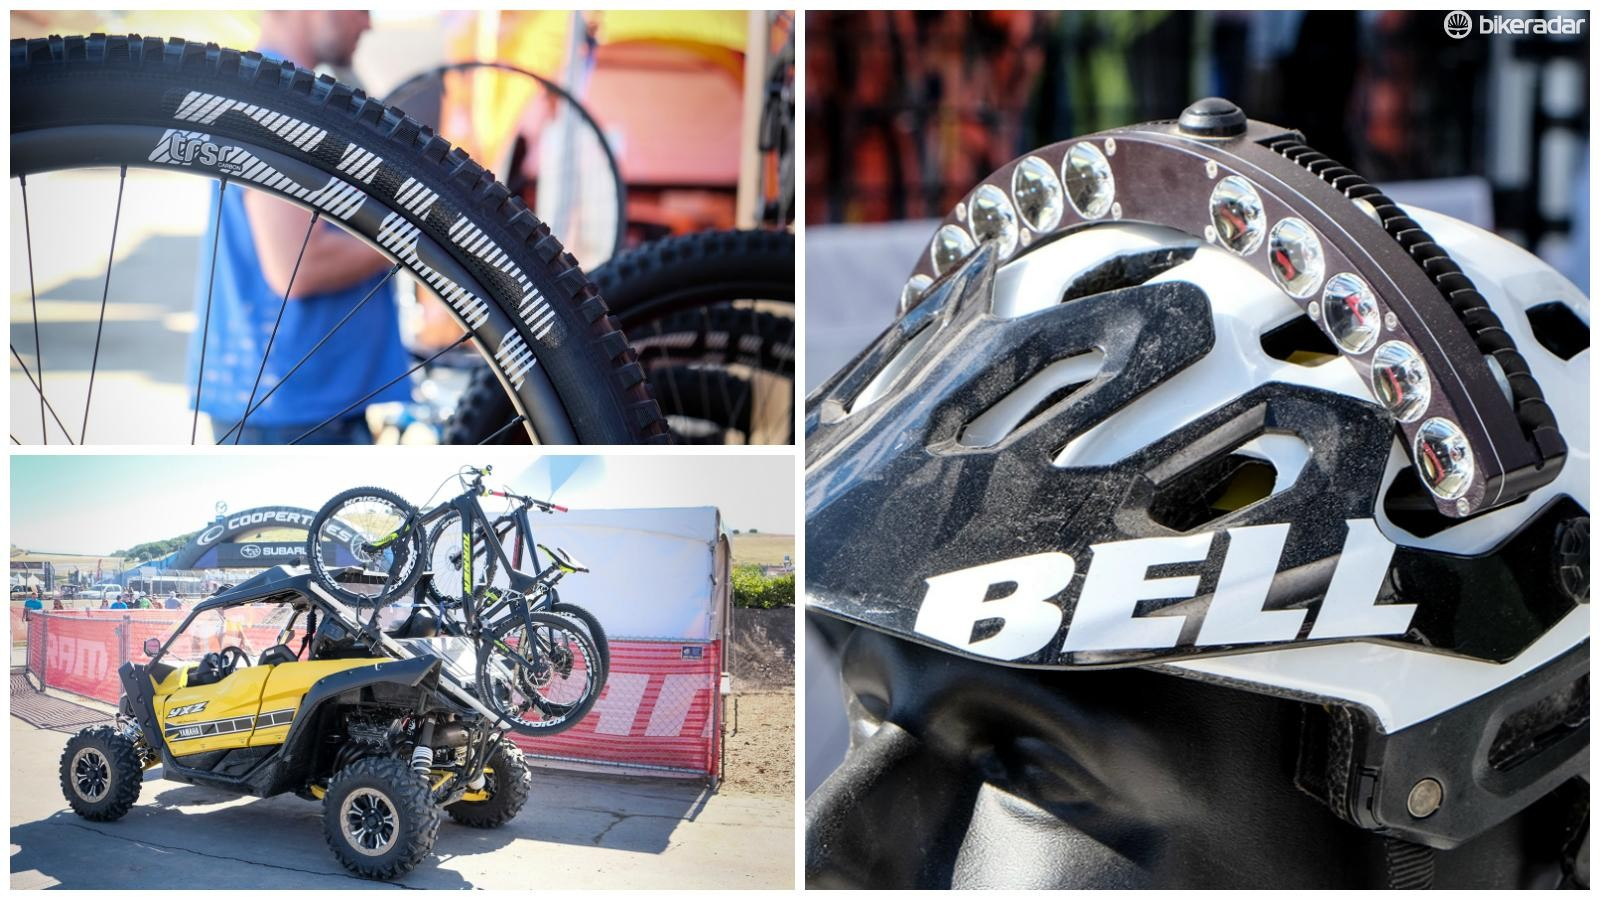 There's plenty of innovation on display at this year's Sea Otter expo